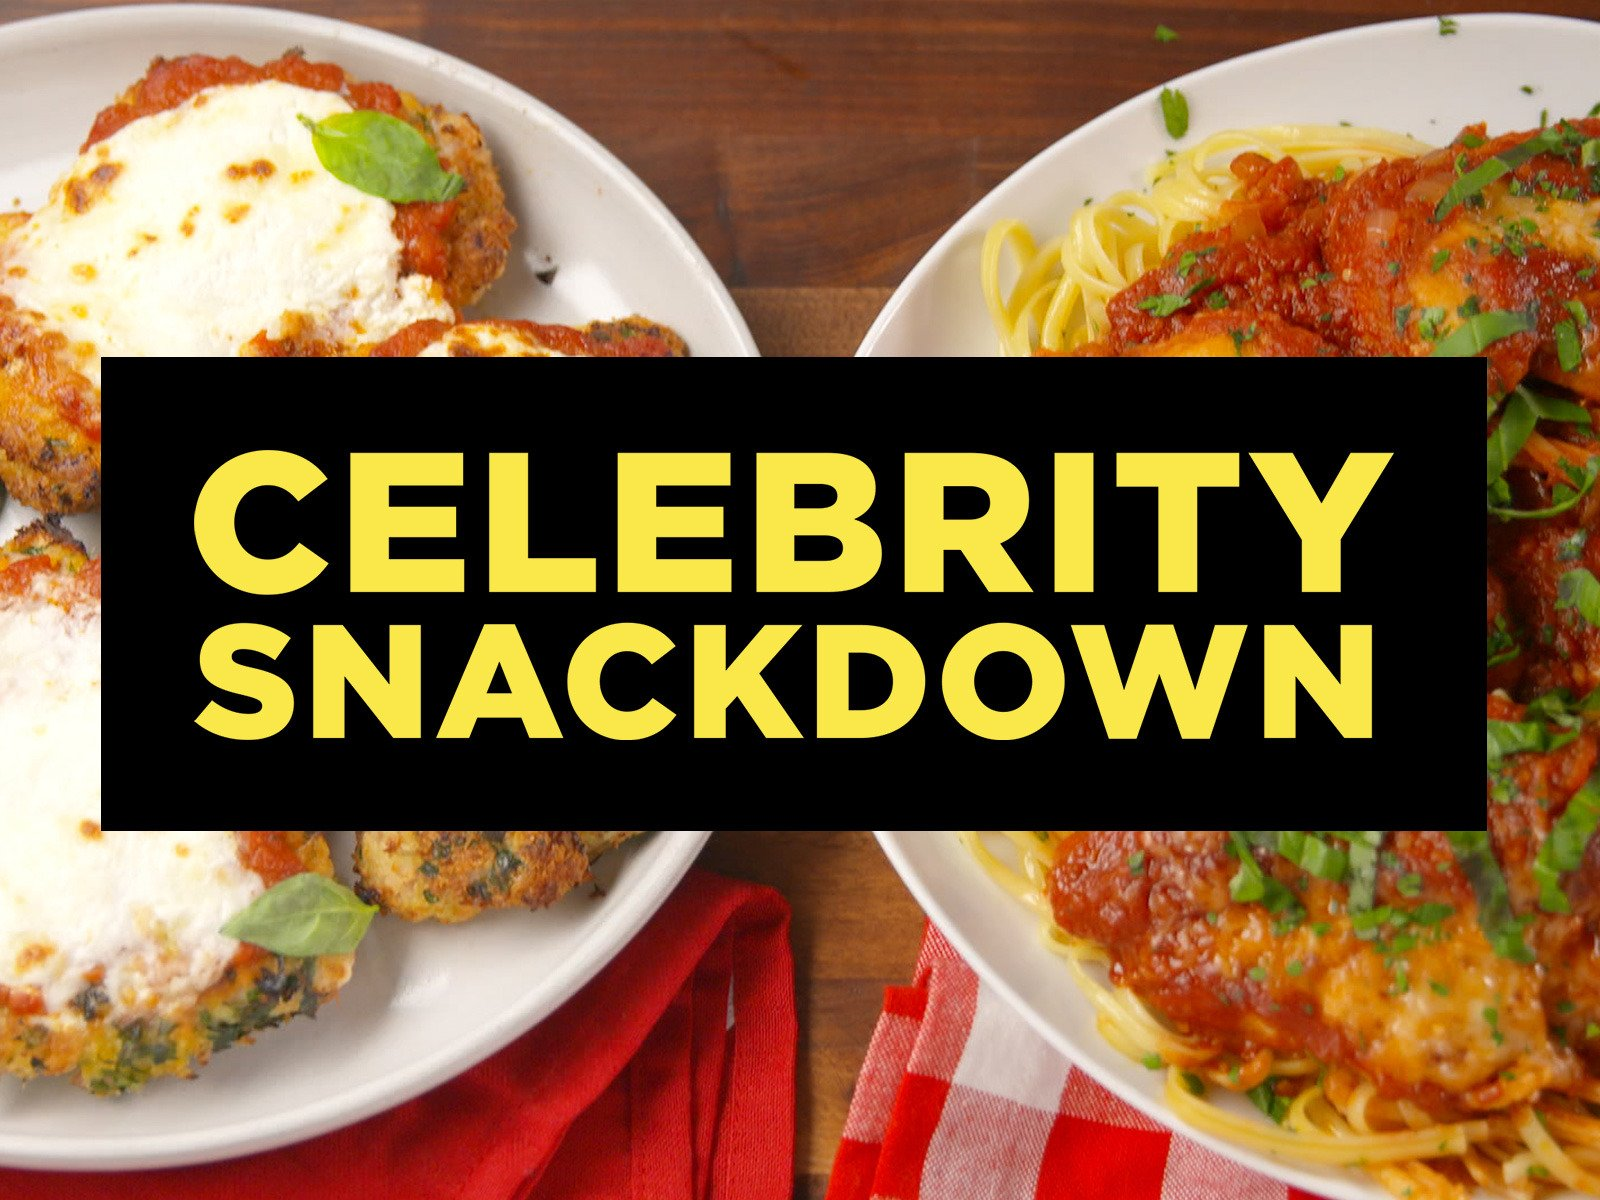 Celebrity Snackdown - Season 1